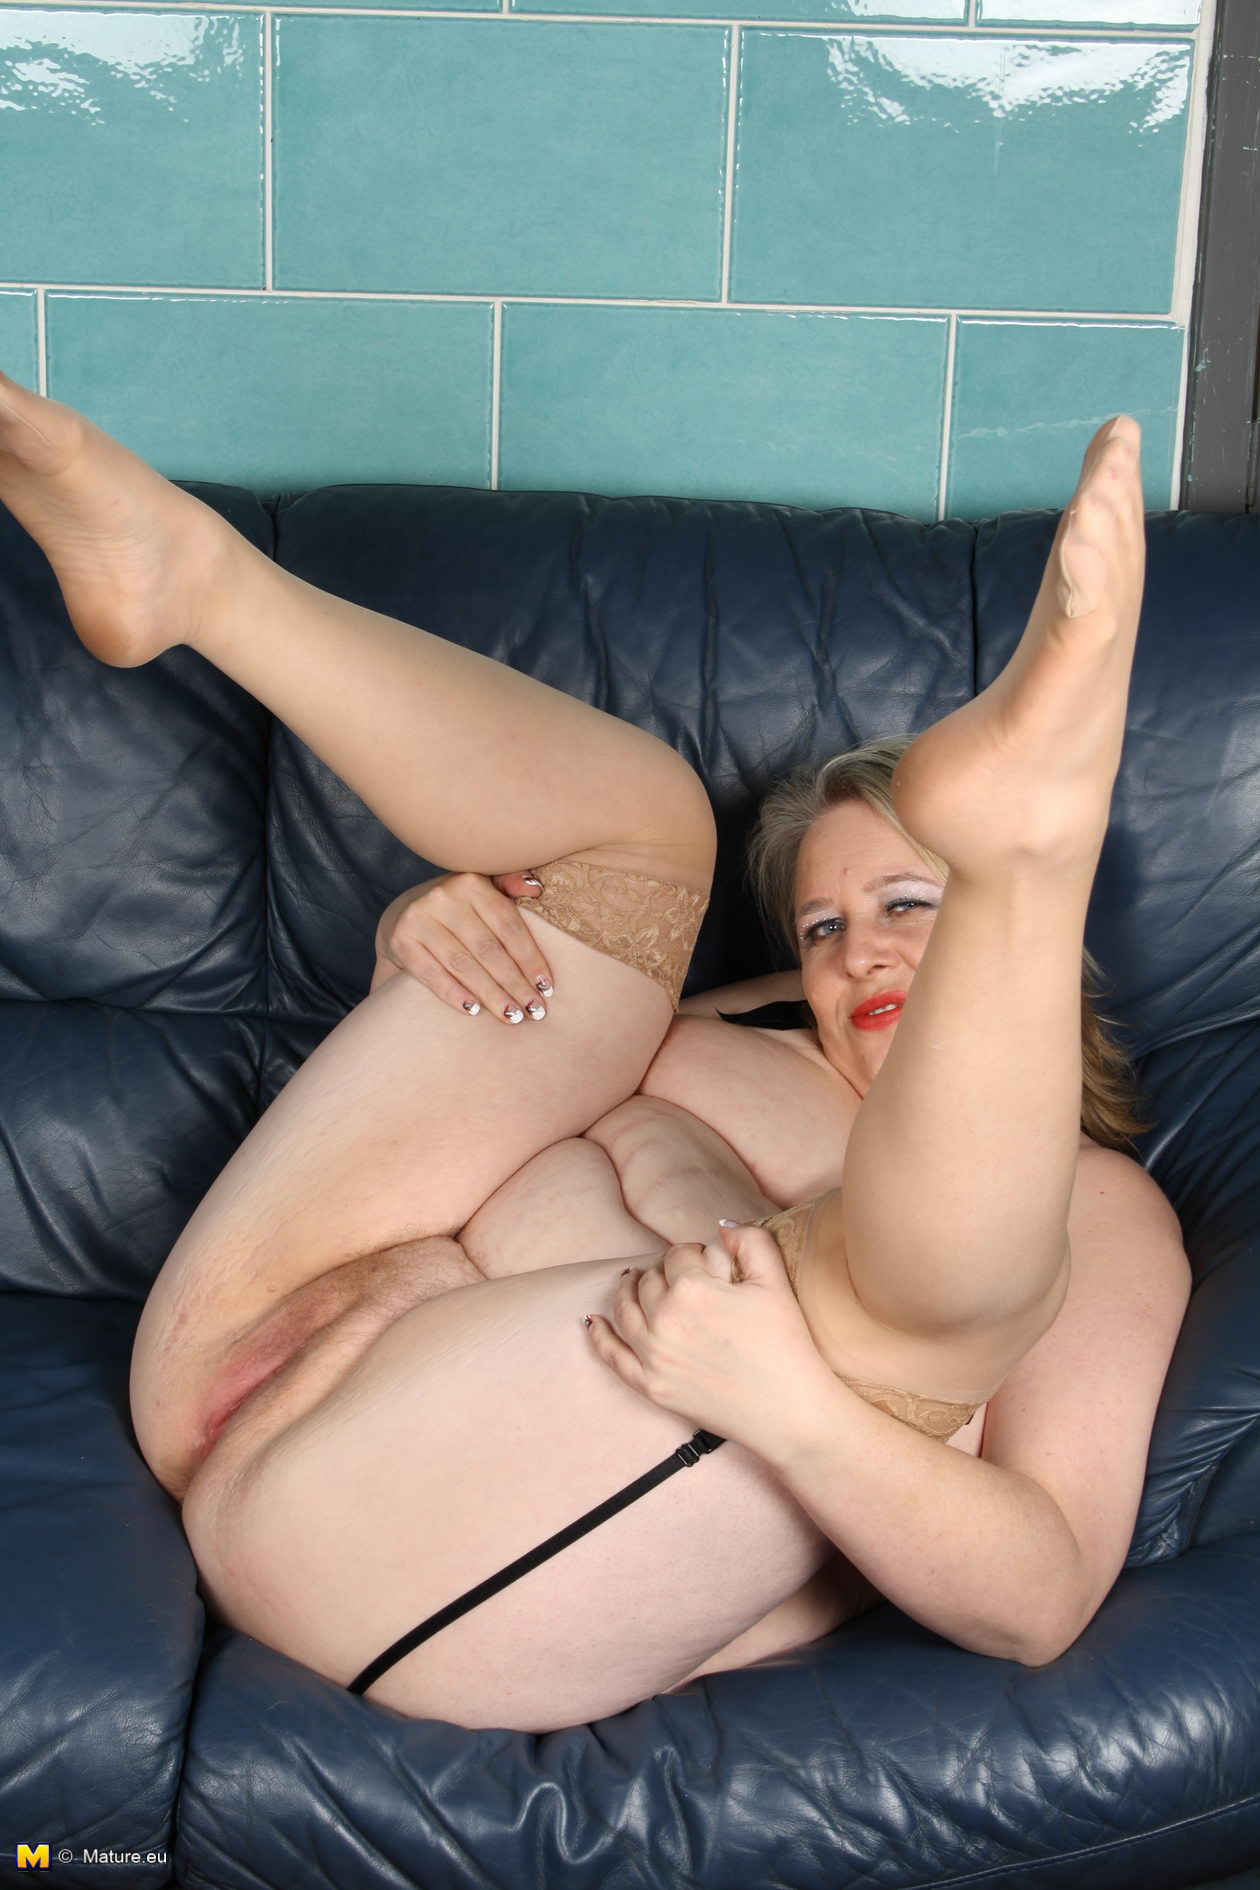 Curvy Girl Riding Dildo